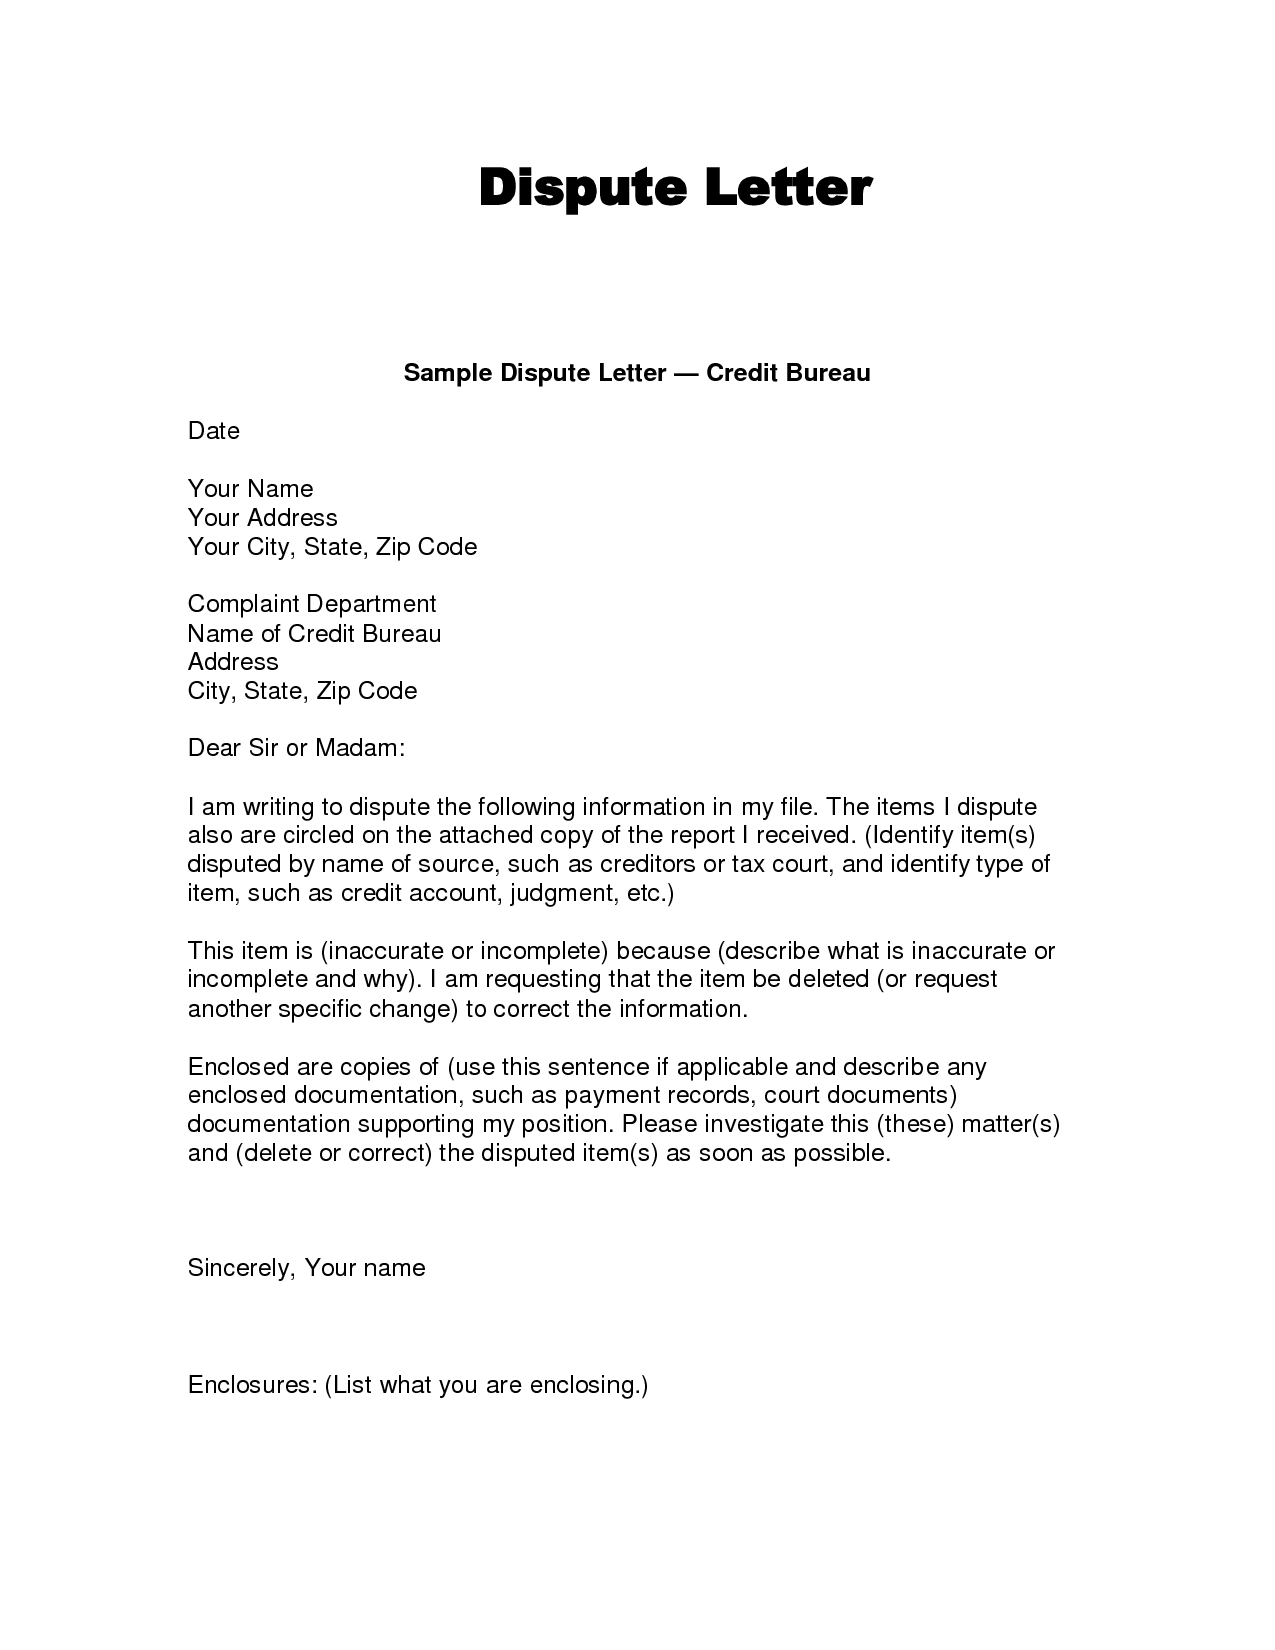 Writing dispute letter format 2018 goalsto do pinterest writing dispute letter format spiritdancerdesigns Choice Image